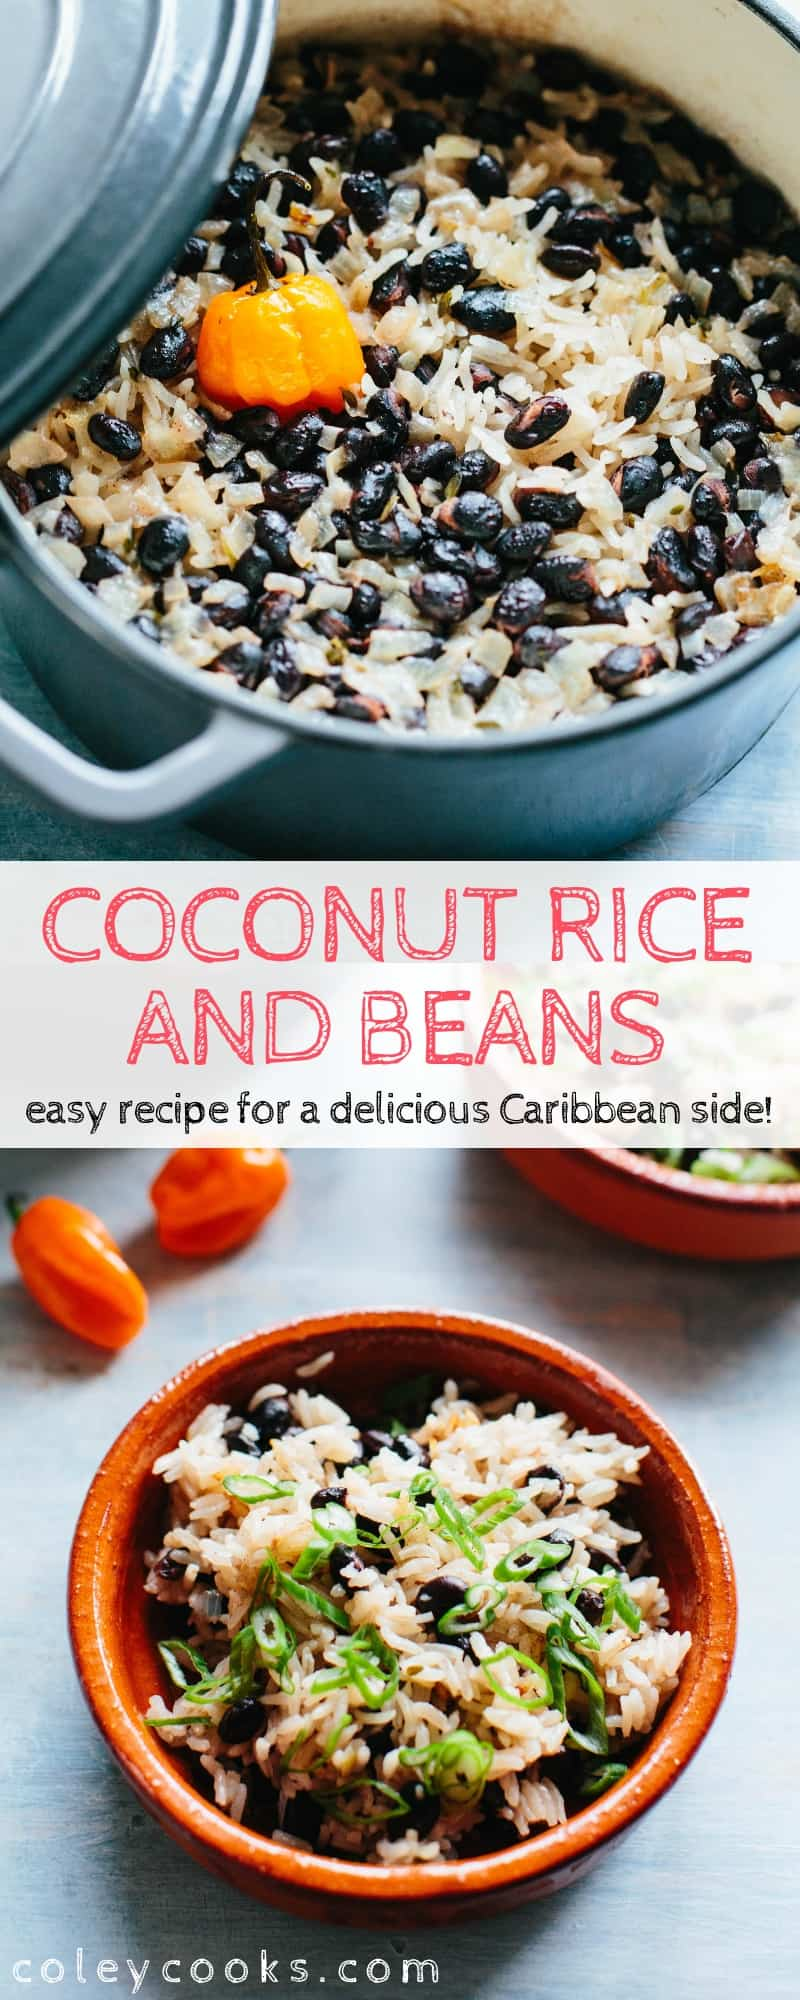 Coconut Rice and Beans is an easy, Caribbean-inspired side dish that's packed with protein and flavor! #easy #caribbean #jamaican #recipe #rice #beans #coconut #side | ColeyCooks.com